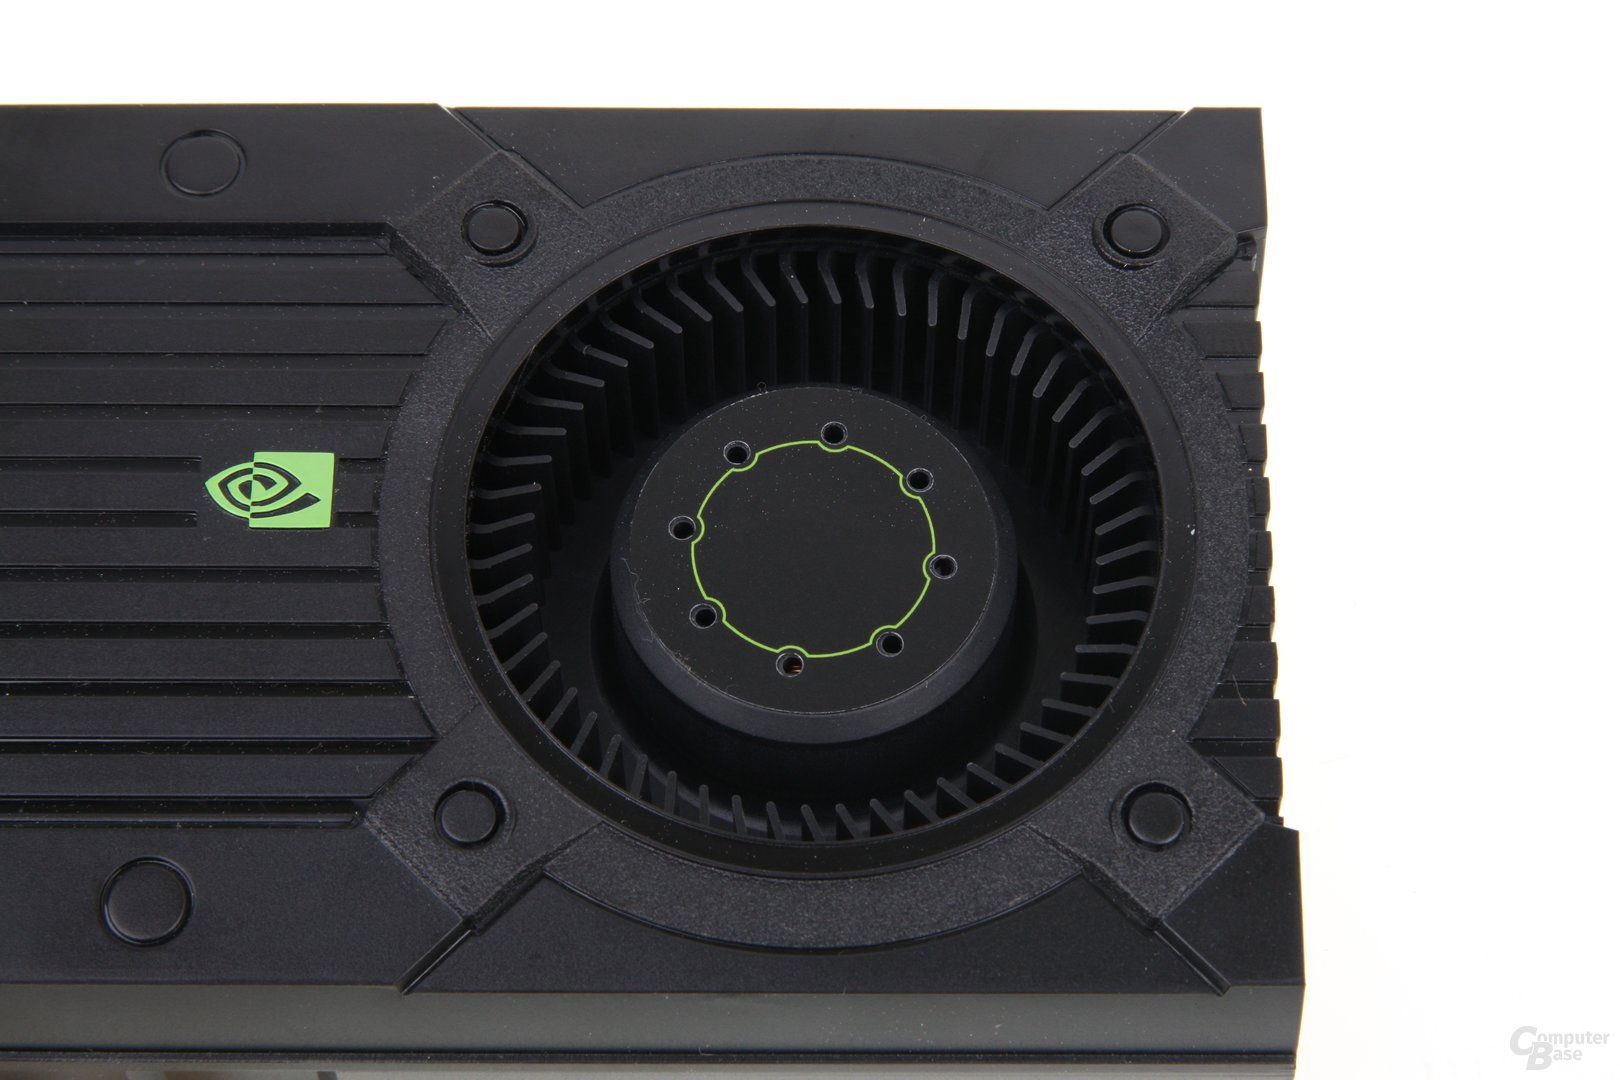 GeForce GTX 670 Lüfter